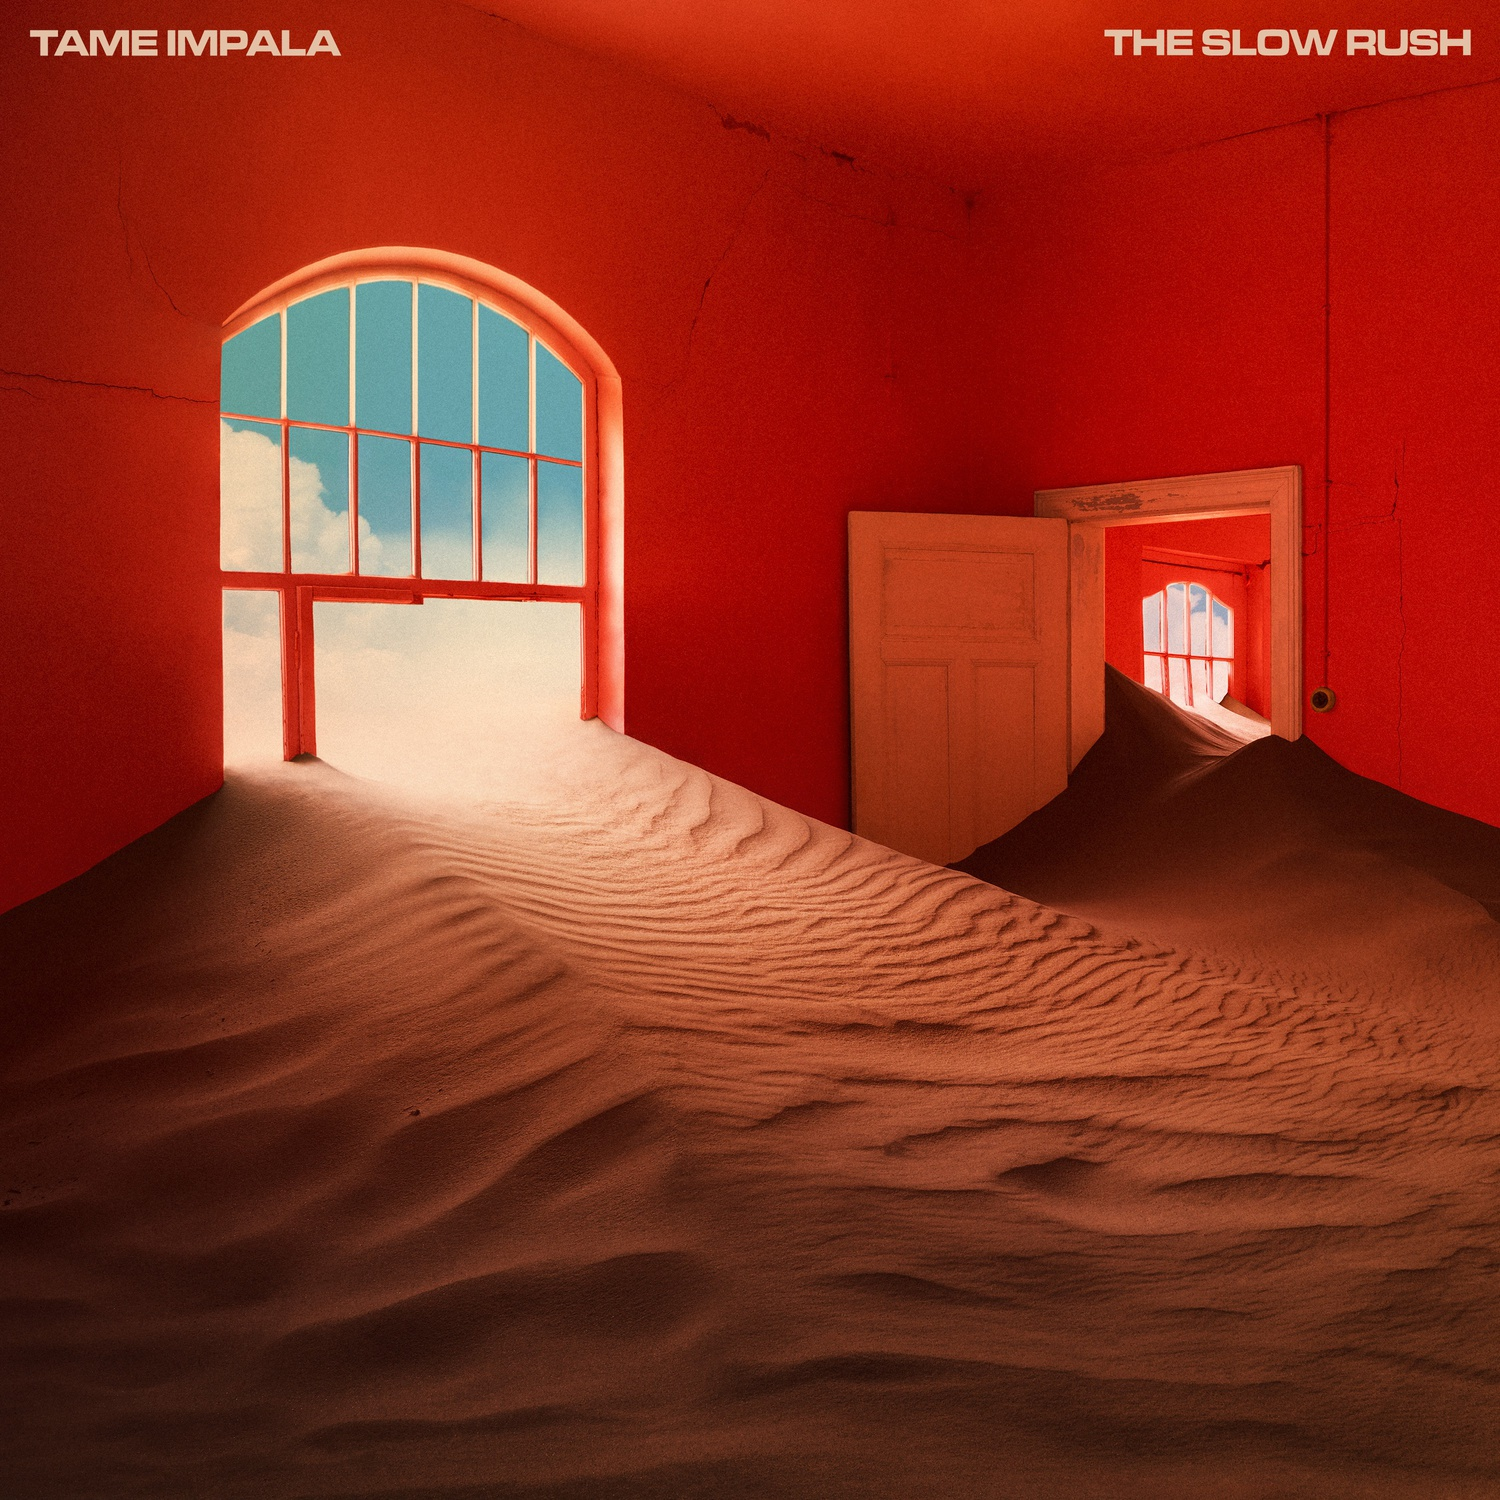 """The Album Cover for Tame Impala's """"The Slow Rush."""""""